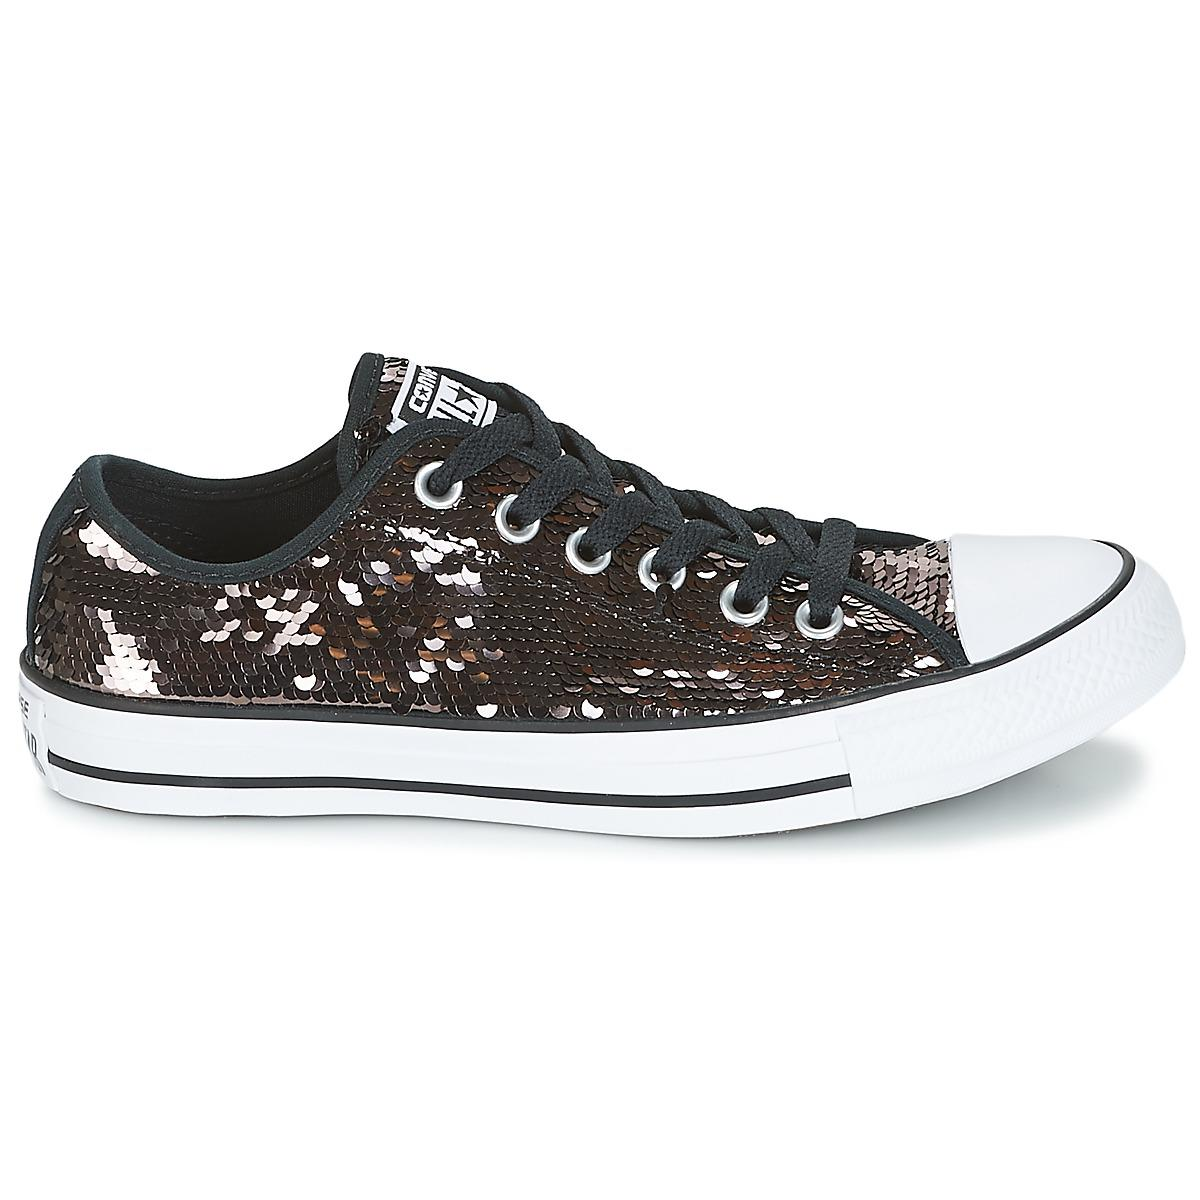 2d9cd45d4fd Converse Chuck Taylor All Star Sequins Ox Gunmetal white black ...